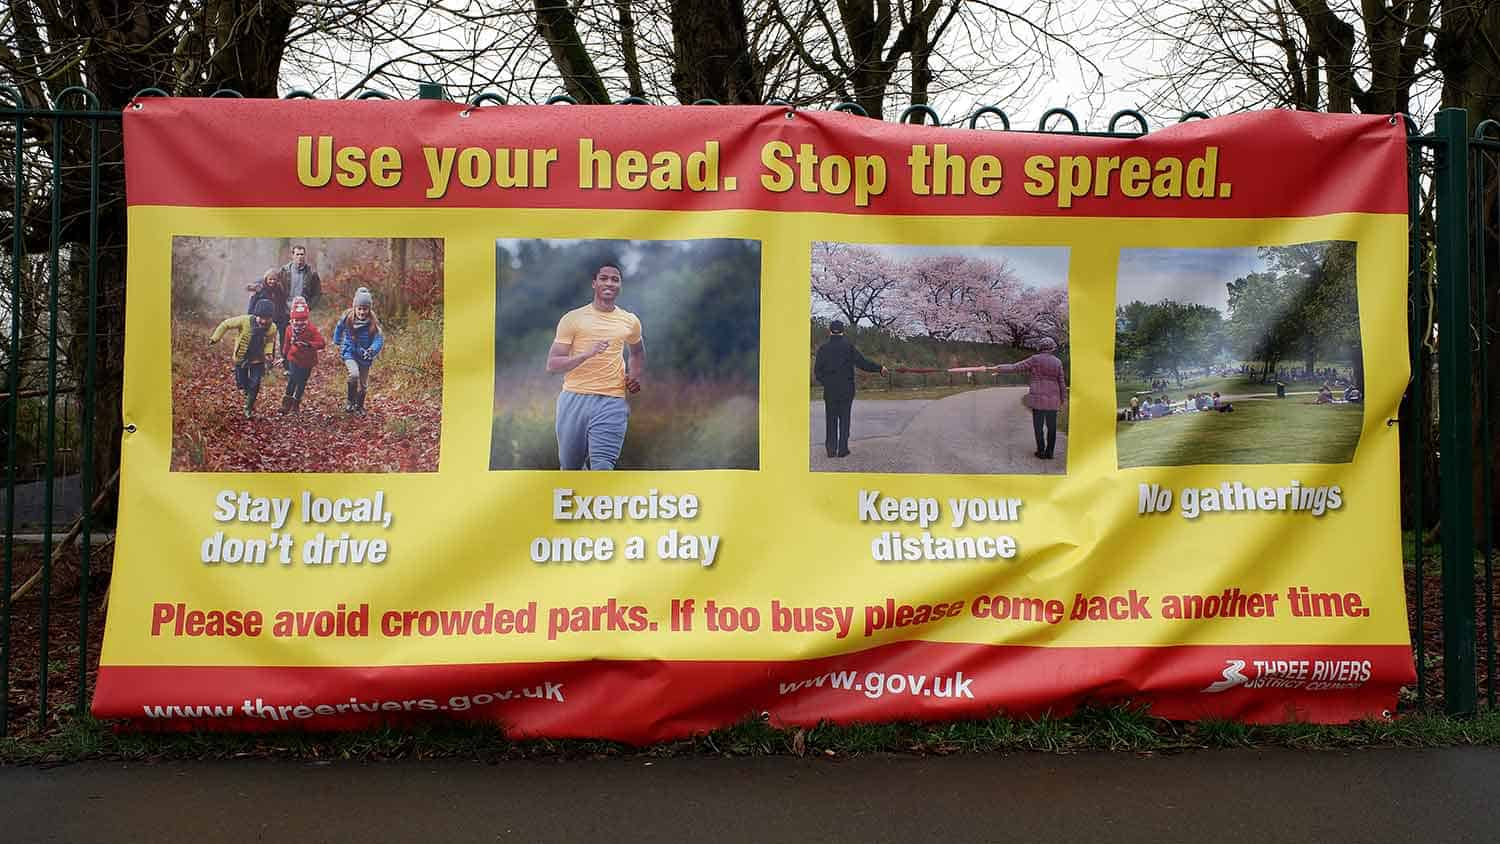 Sign saying 'use your head. Stop the spread' with examples of what you can and can't do including, 'Stay local don't drive', 'exercise once a day' 'keep your distance' and 'no gathering'.